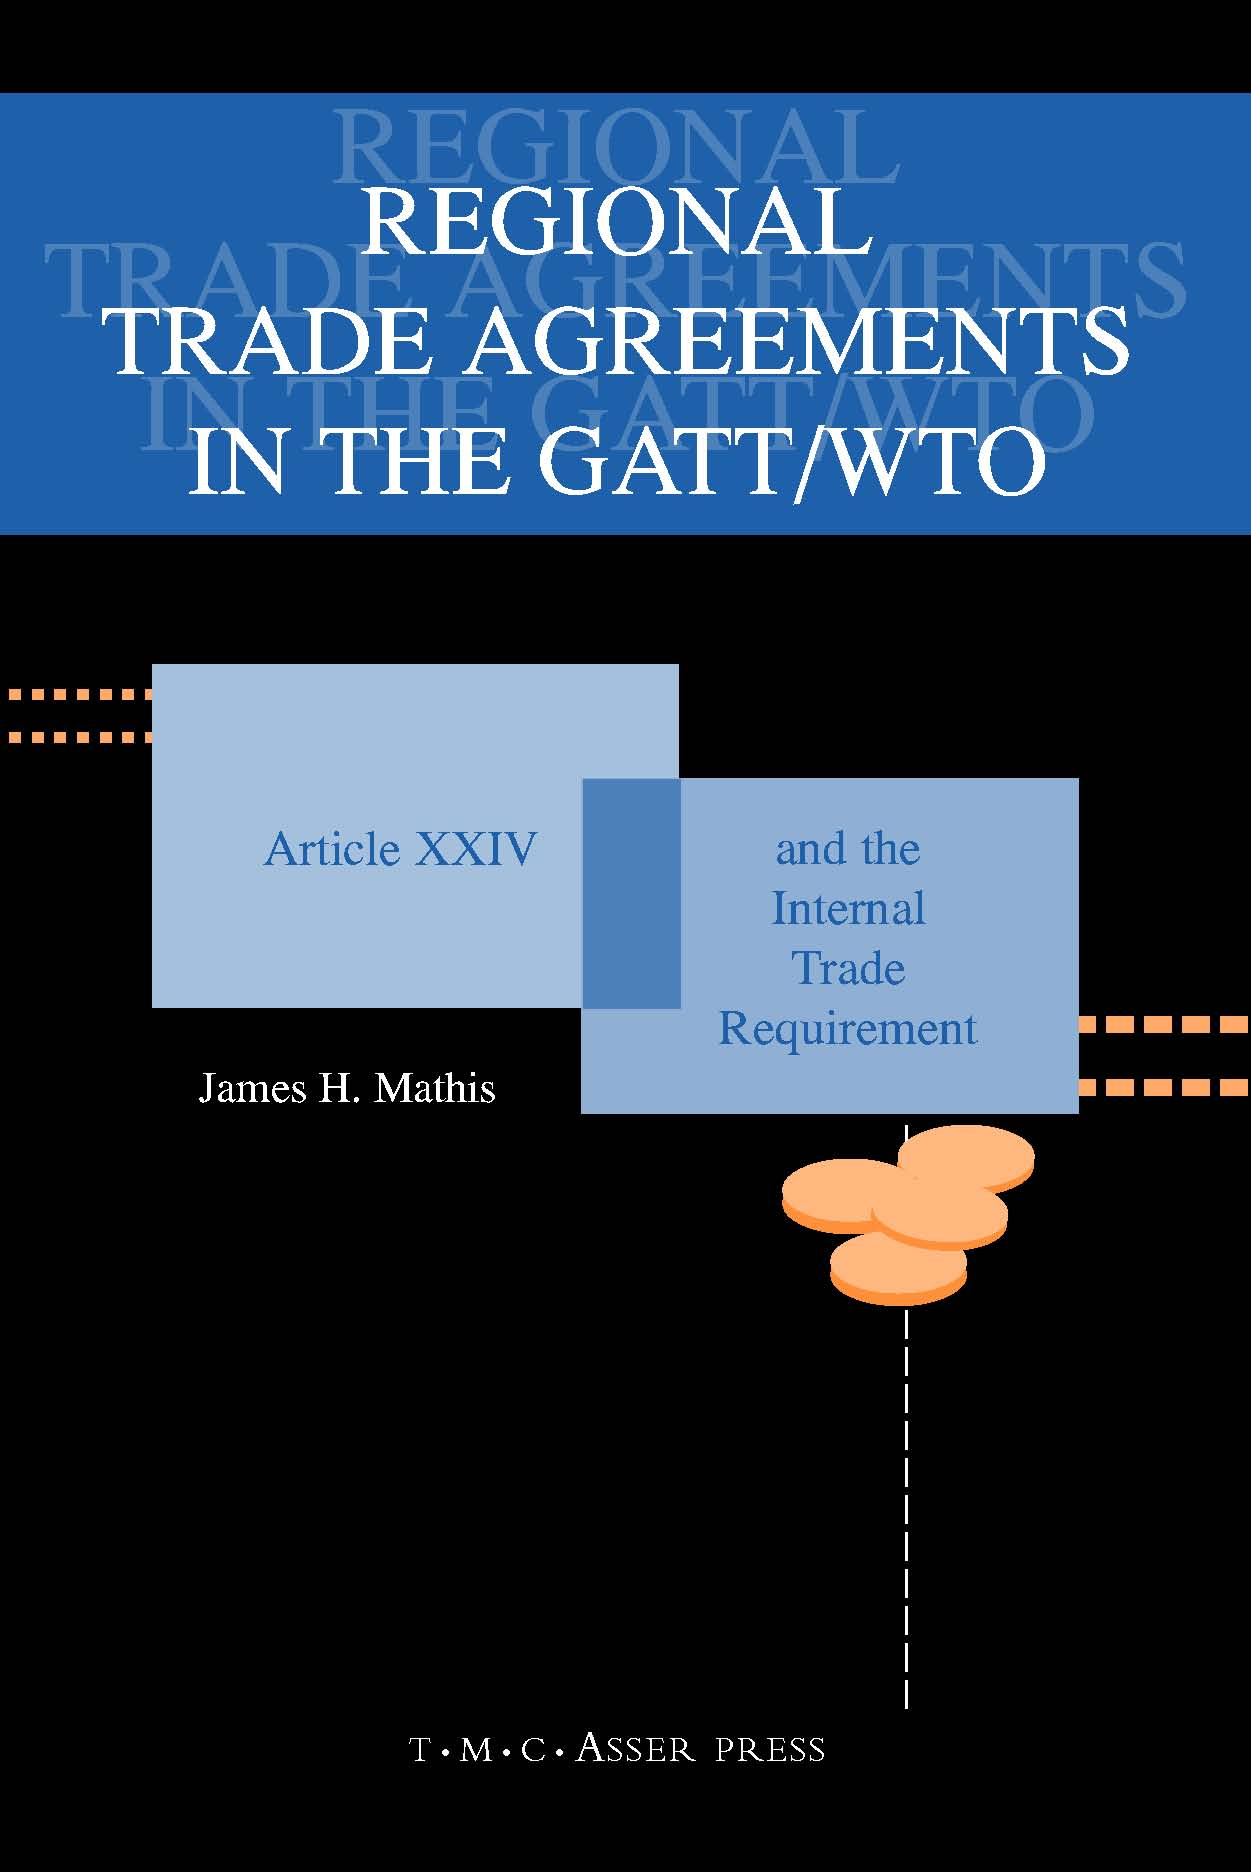 Regional Trade Agreements in the GATT/WTO - Article XXIV and the Internal Trade Requirement